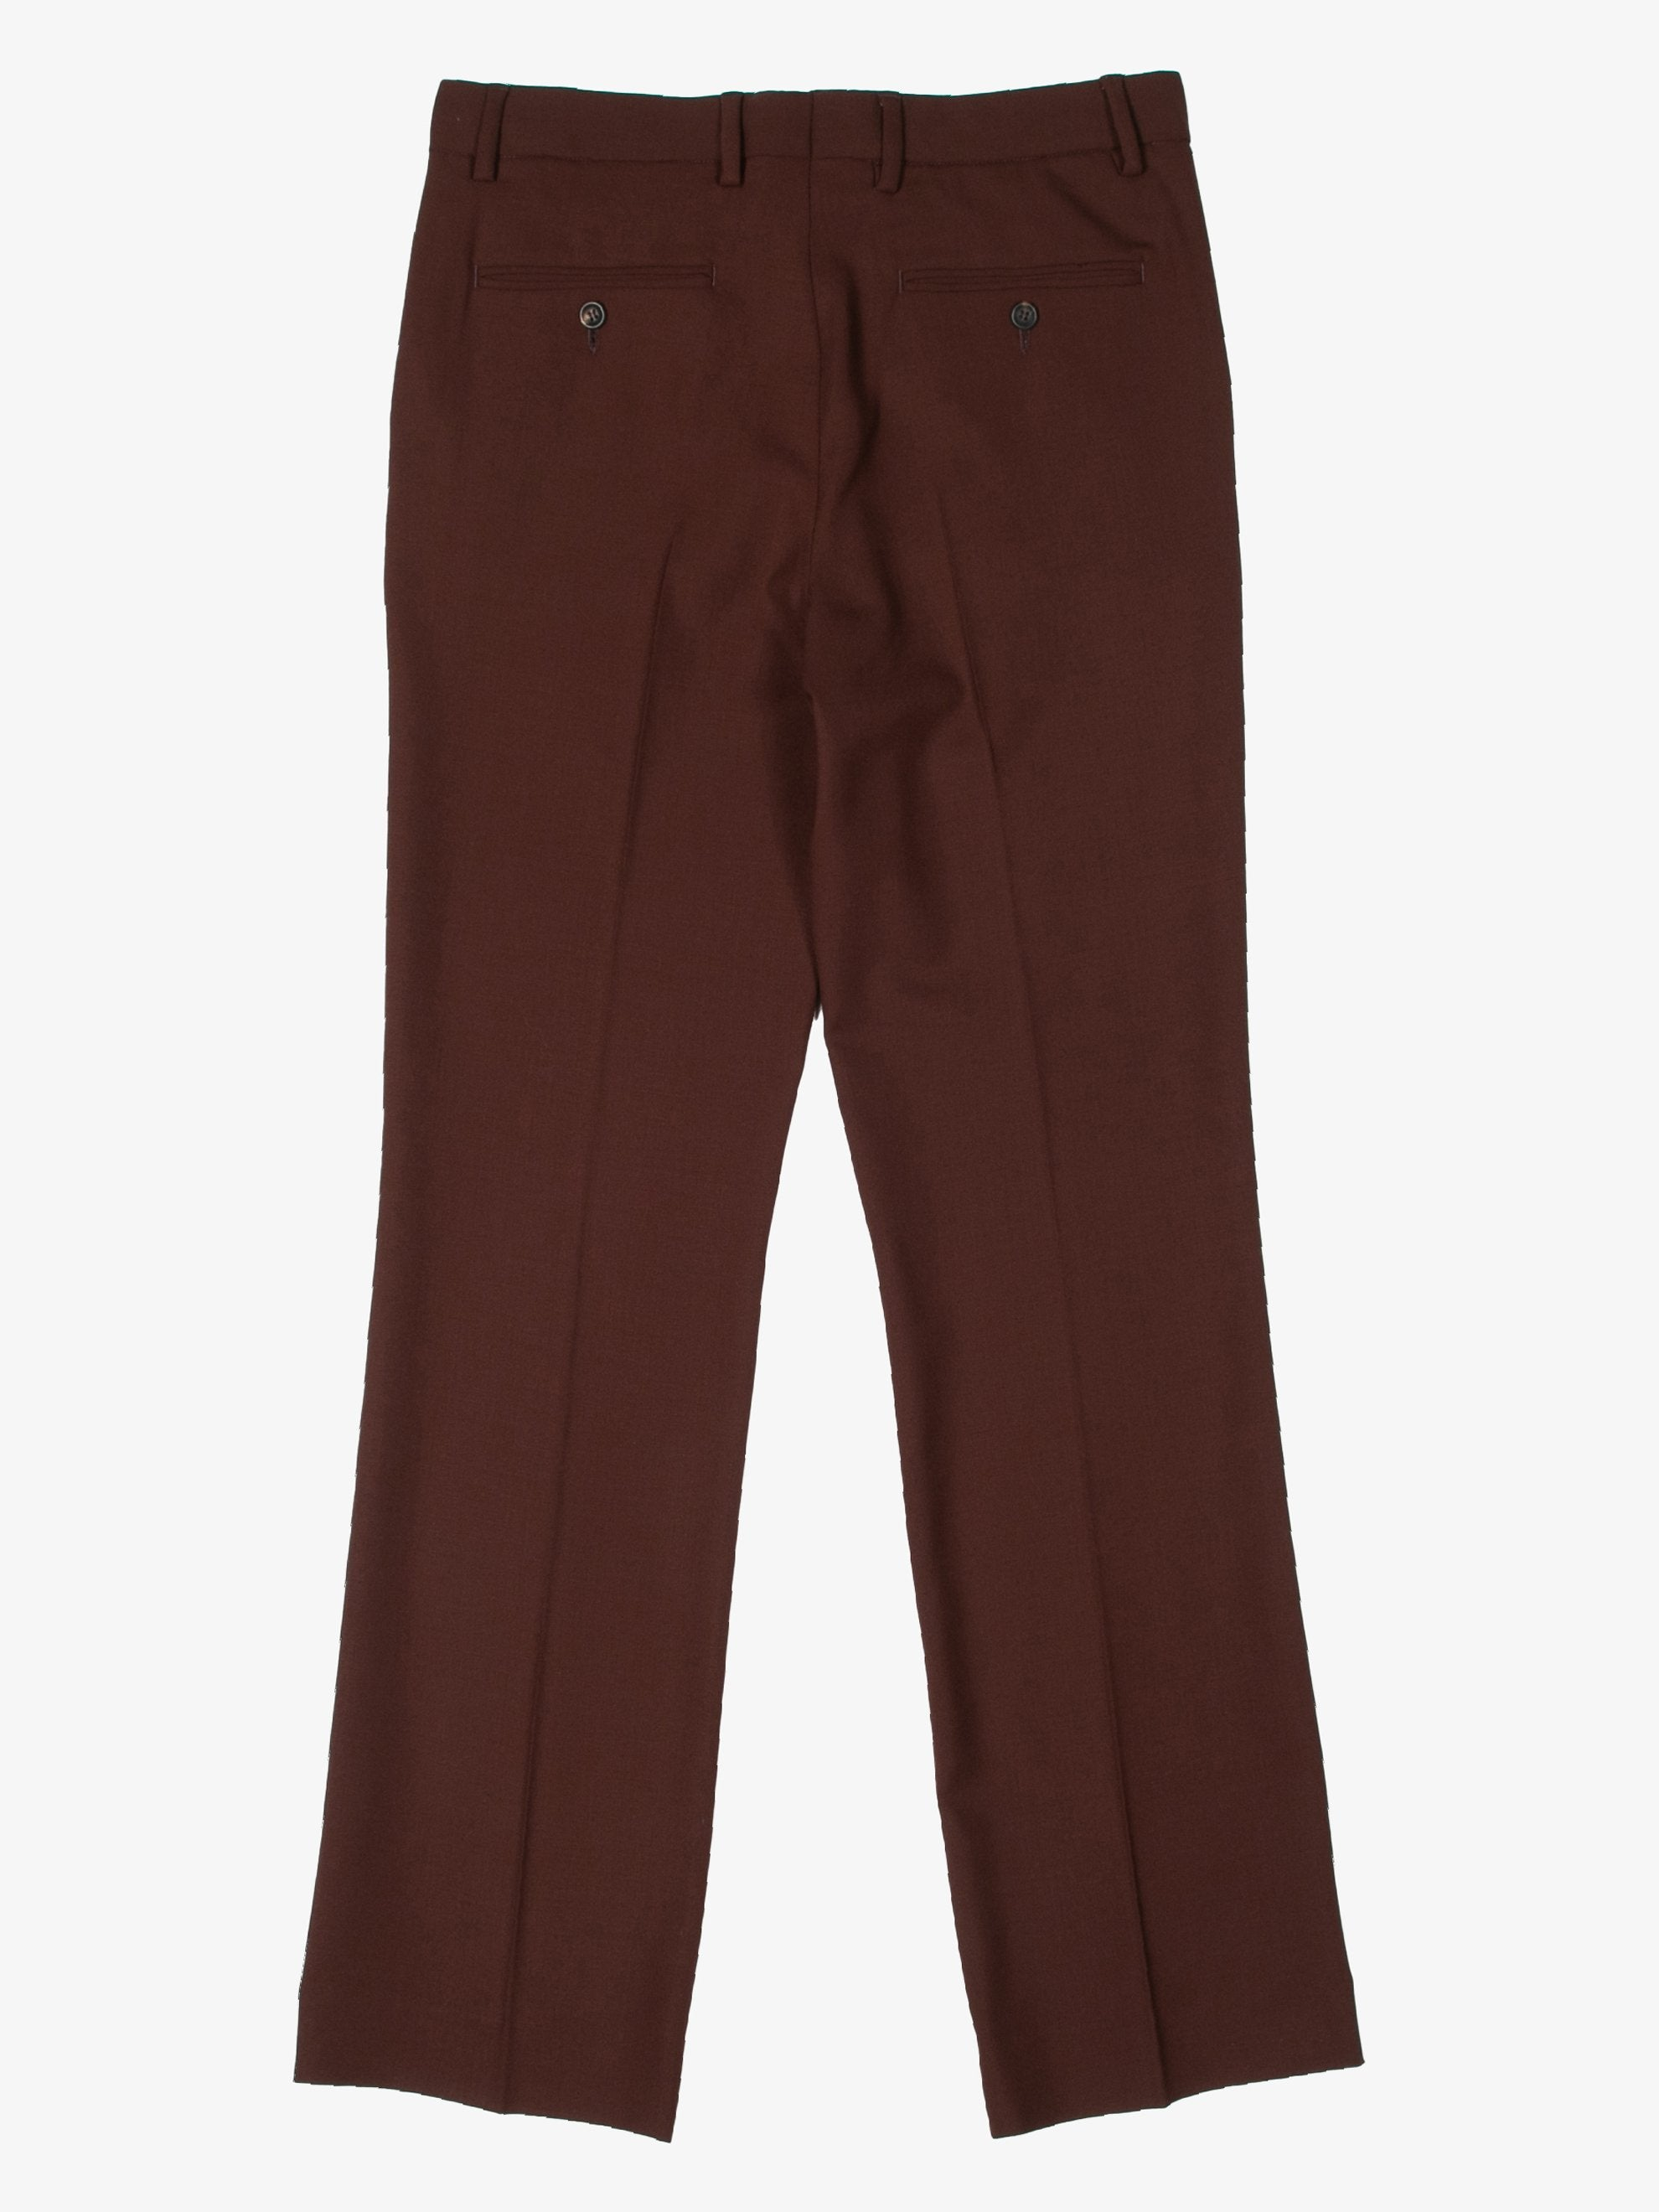 Tailored Bootcut Pant